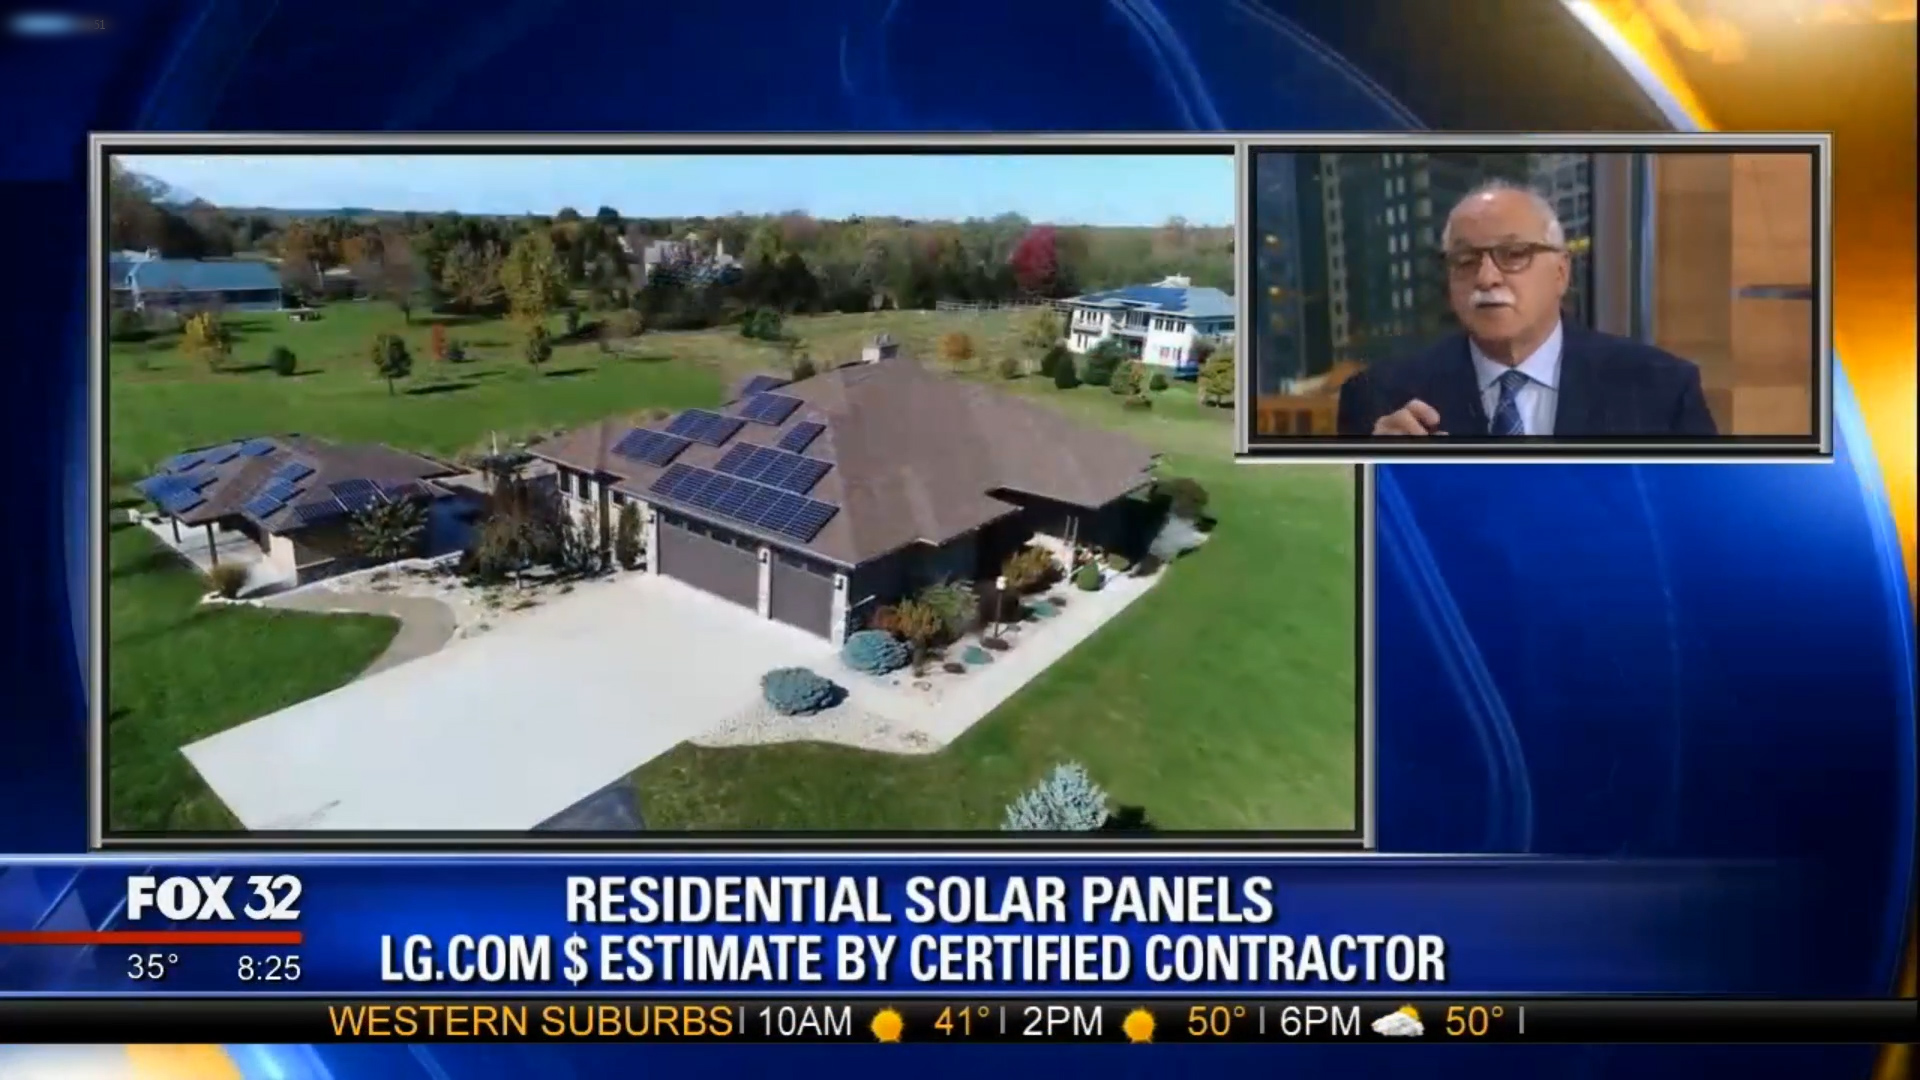 LG NeON RESIDENTIAL SOLAR PANELS - Estimate by Certified ContractorShop Now